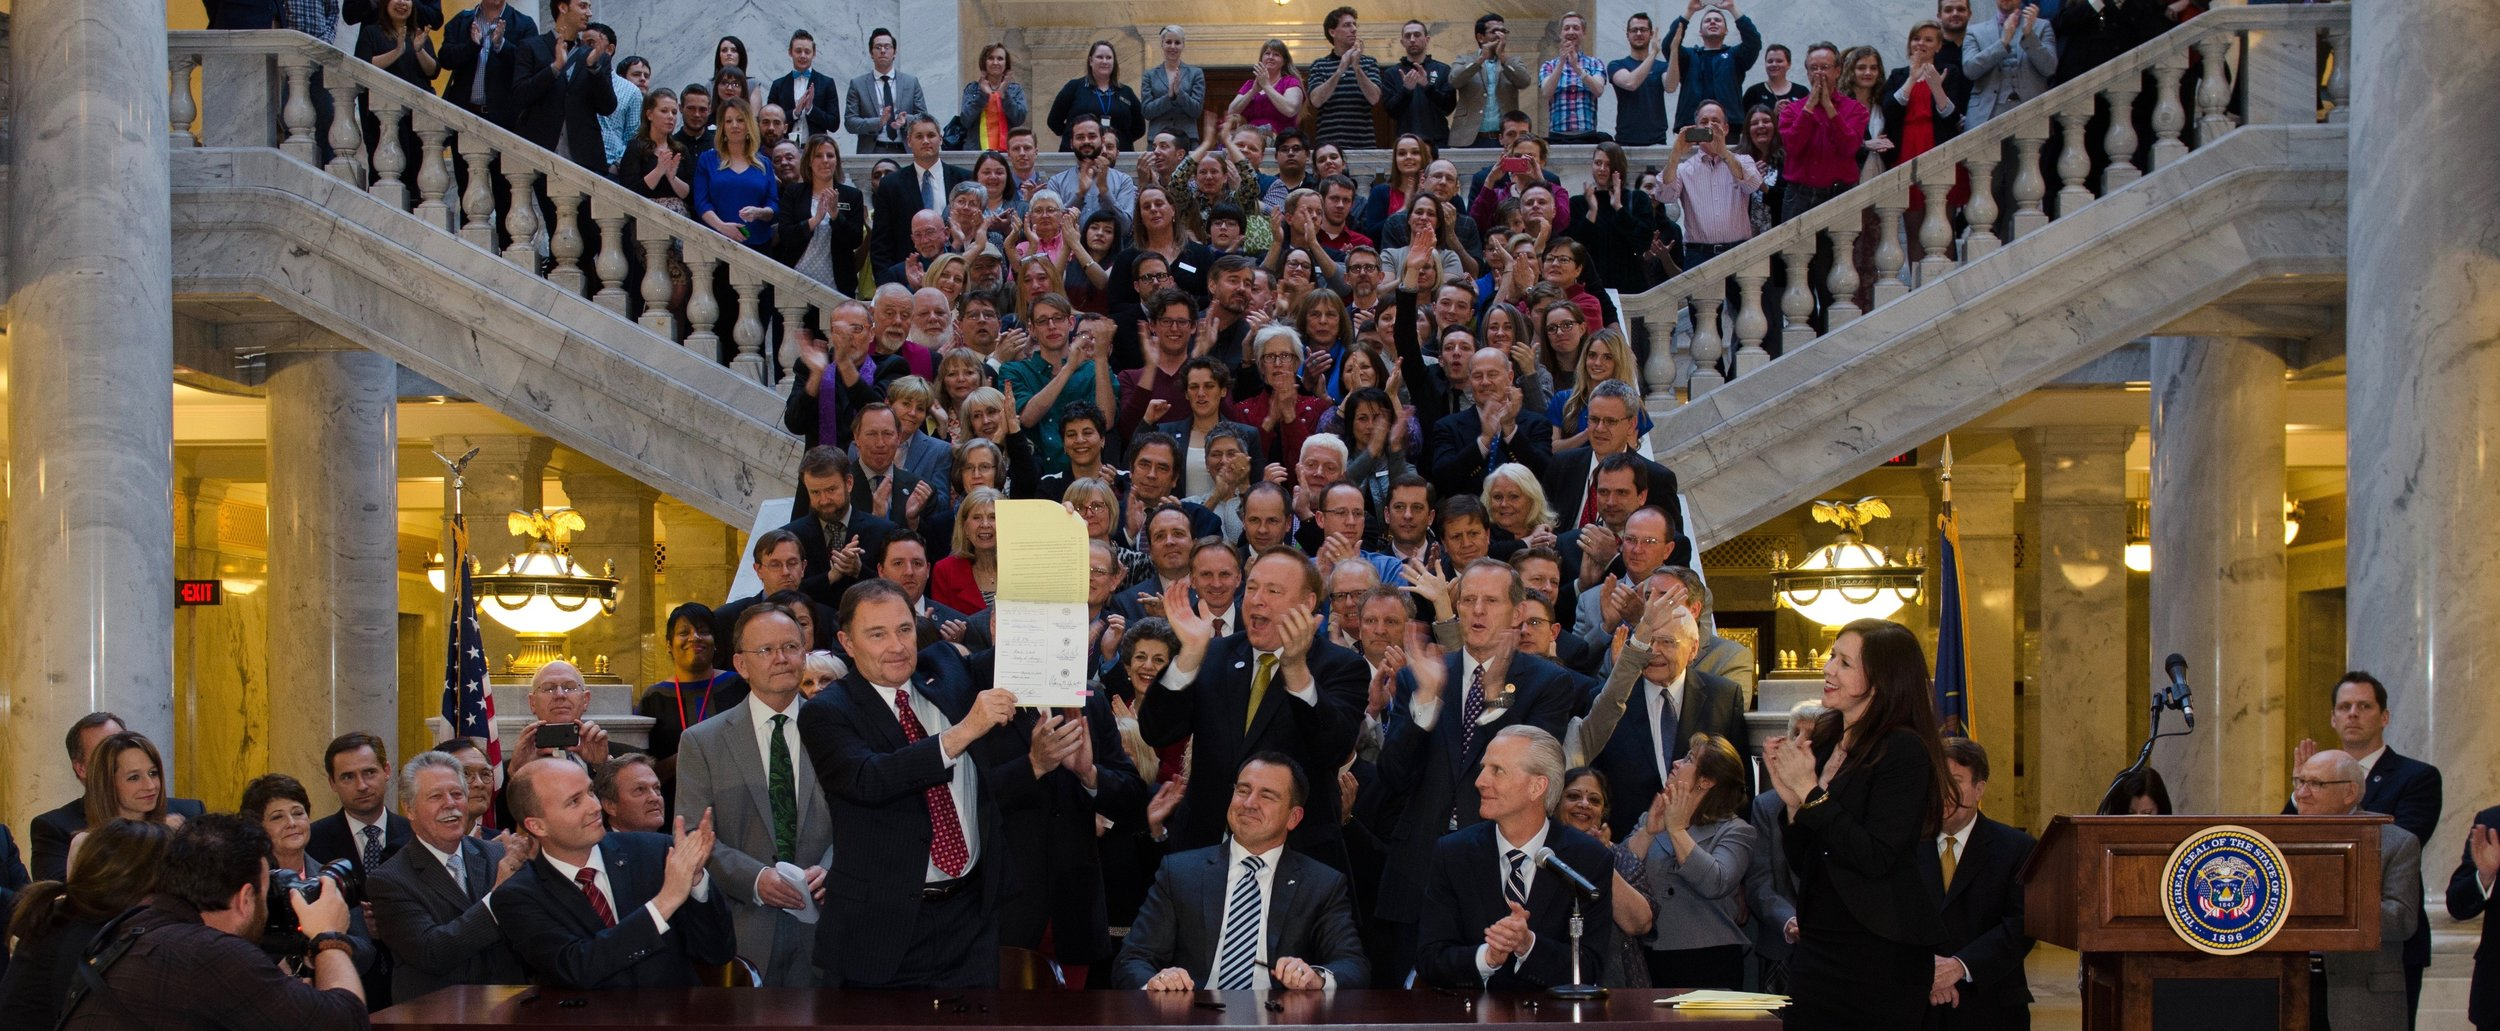 Signing of Utah's 2015 law simultaneously protecting the full LGBT community and persons of faith